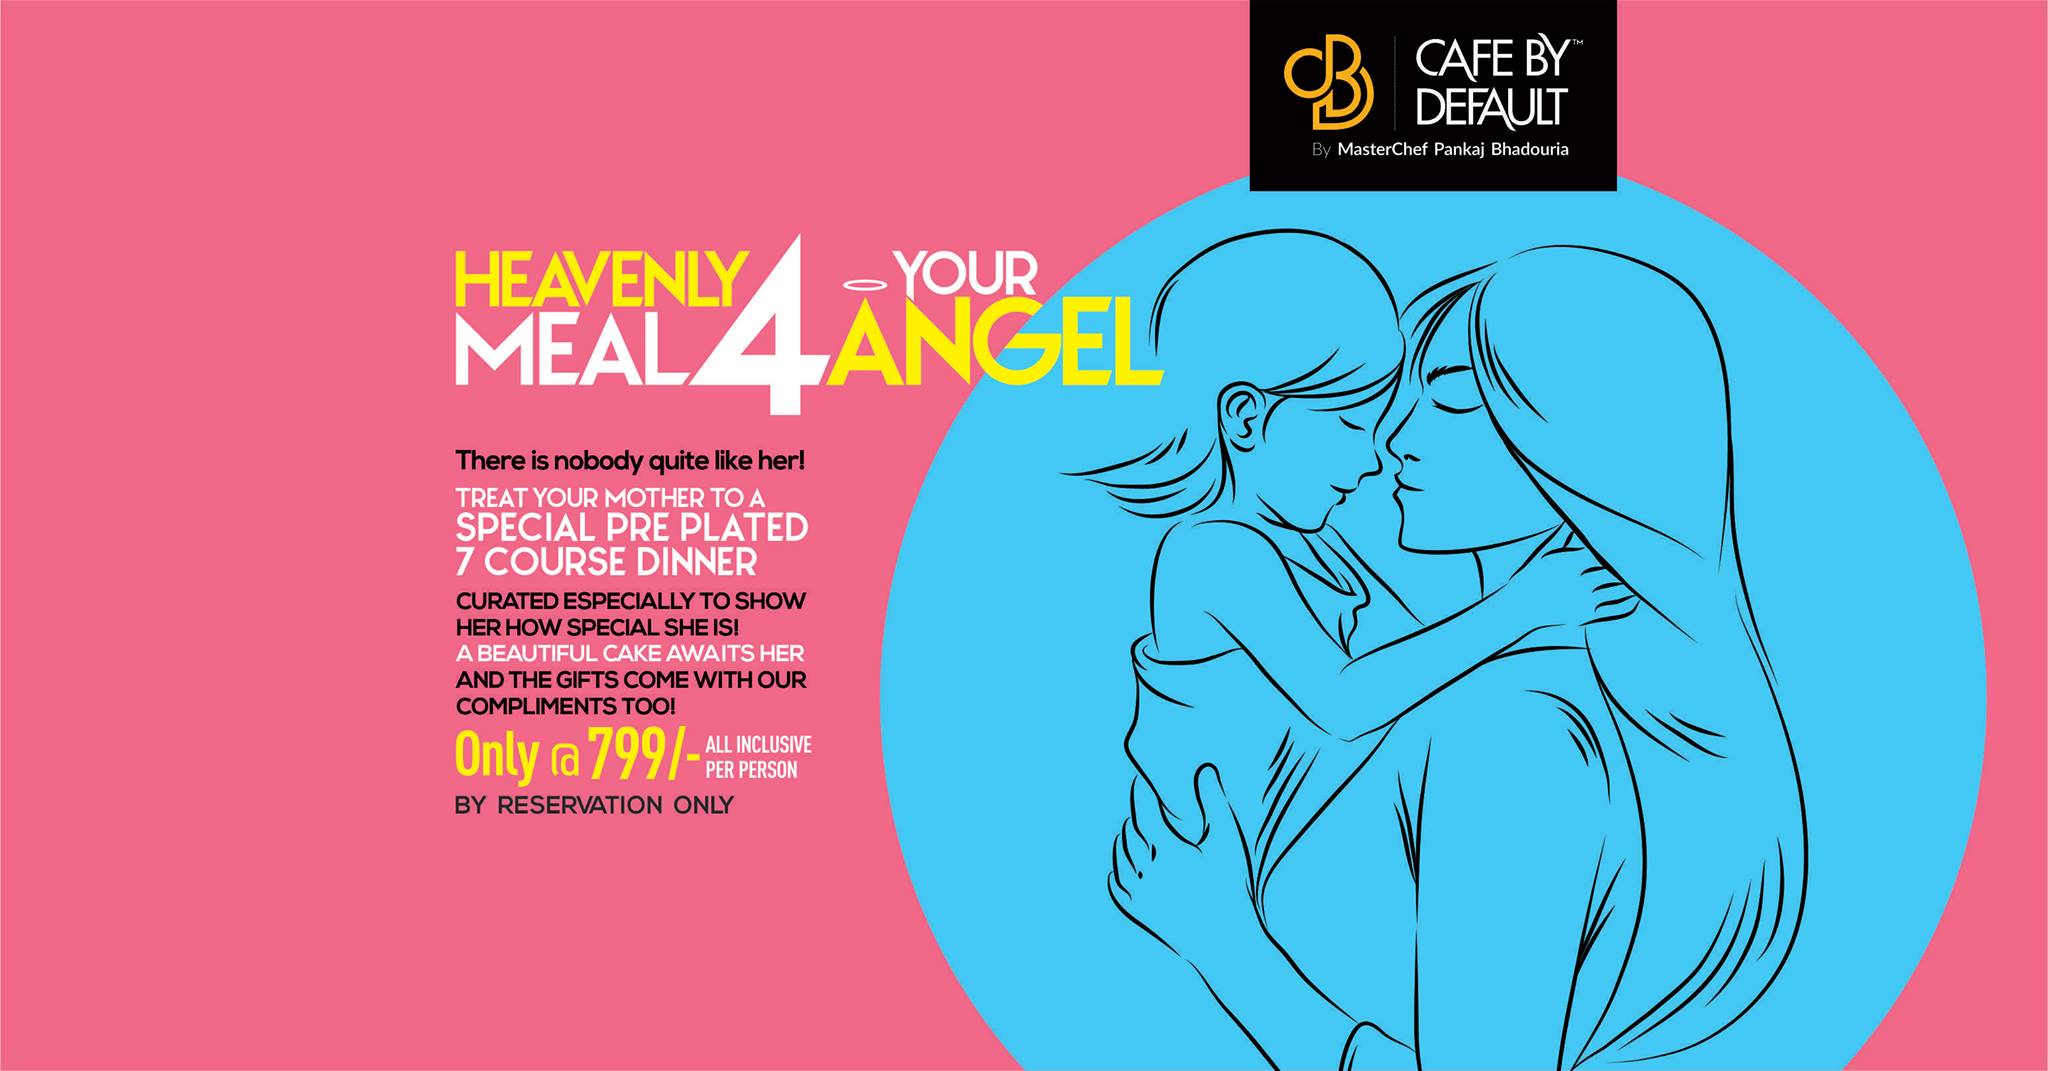 Heavenly Meal 4 Your Angel ! - CBD - Event